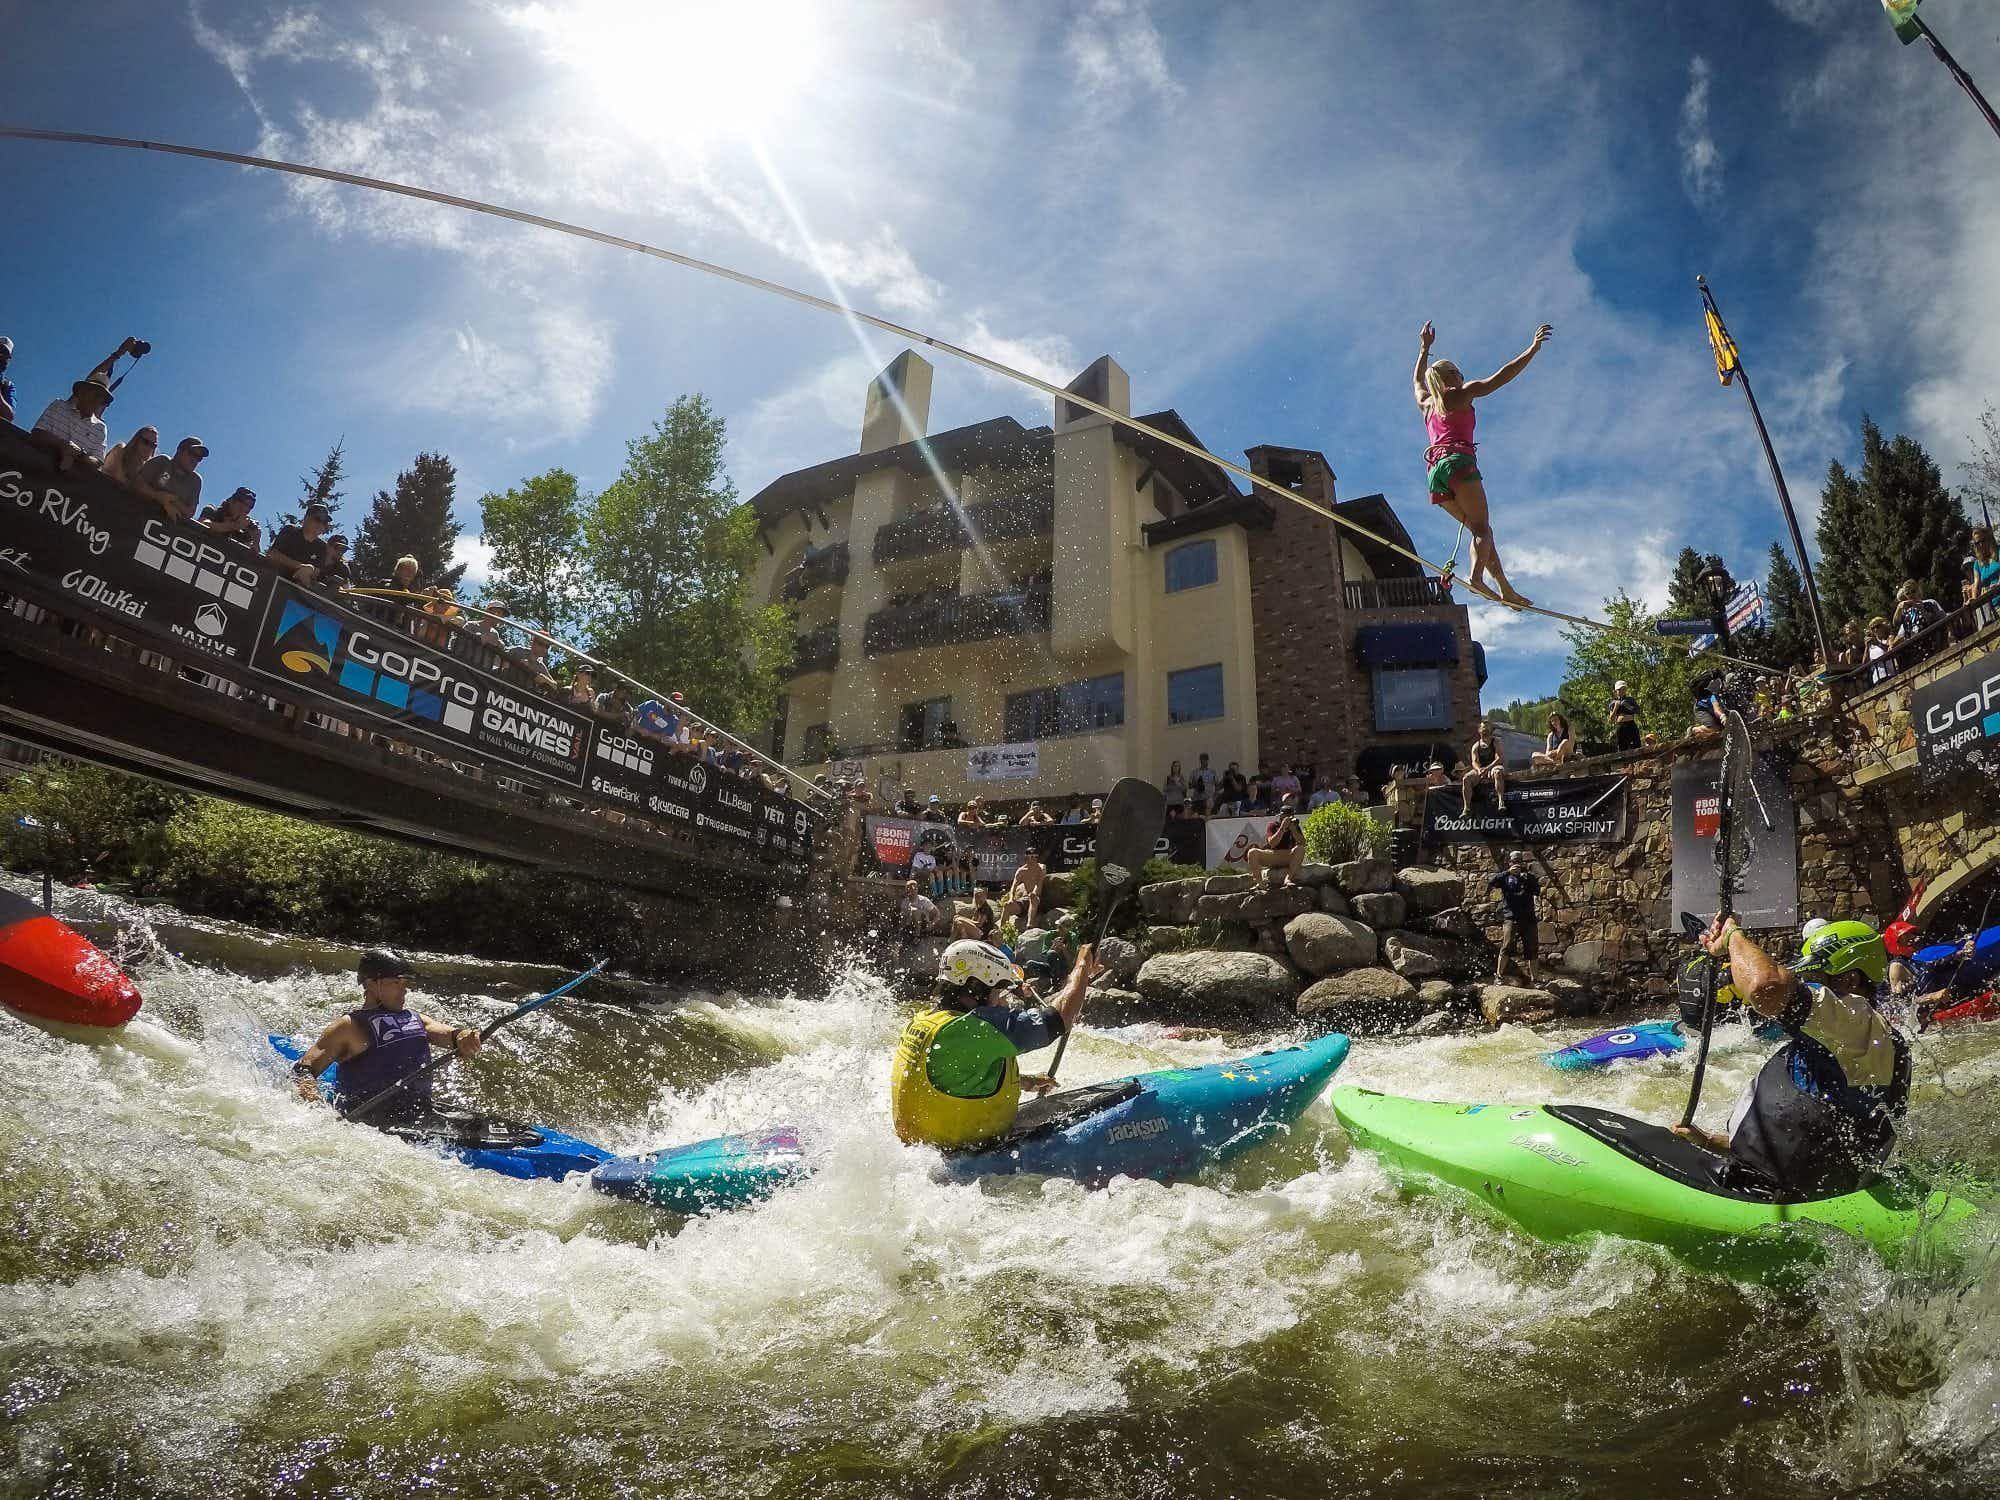 Colorado Rockies is set to host the GoPro Mountain games, combining adventure sports, yoga and dog competitions